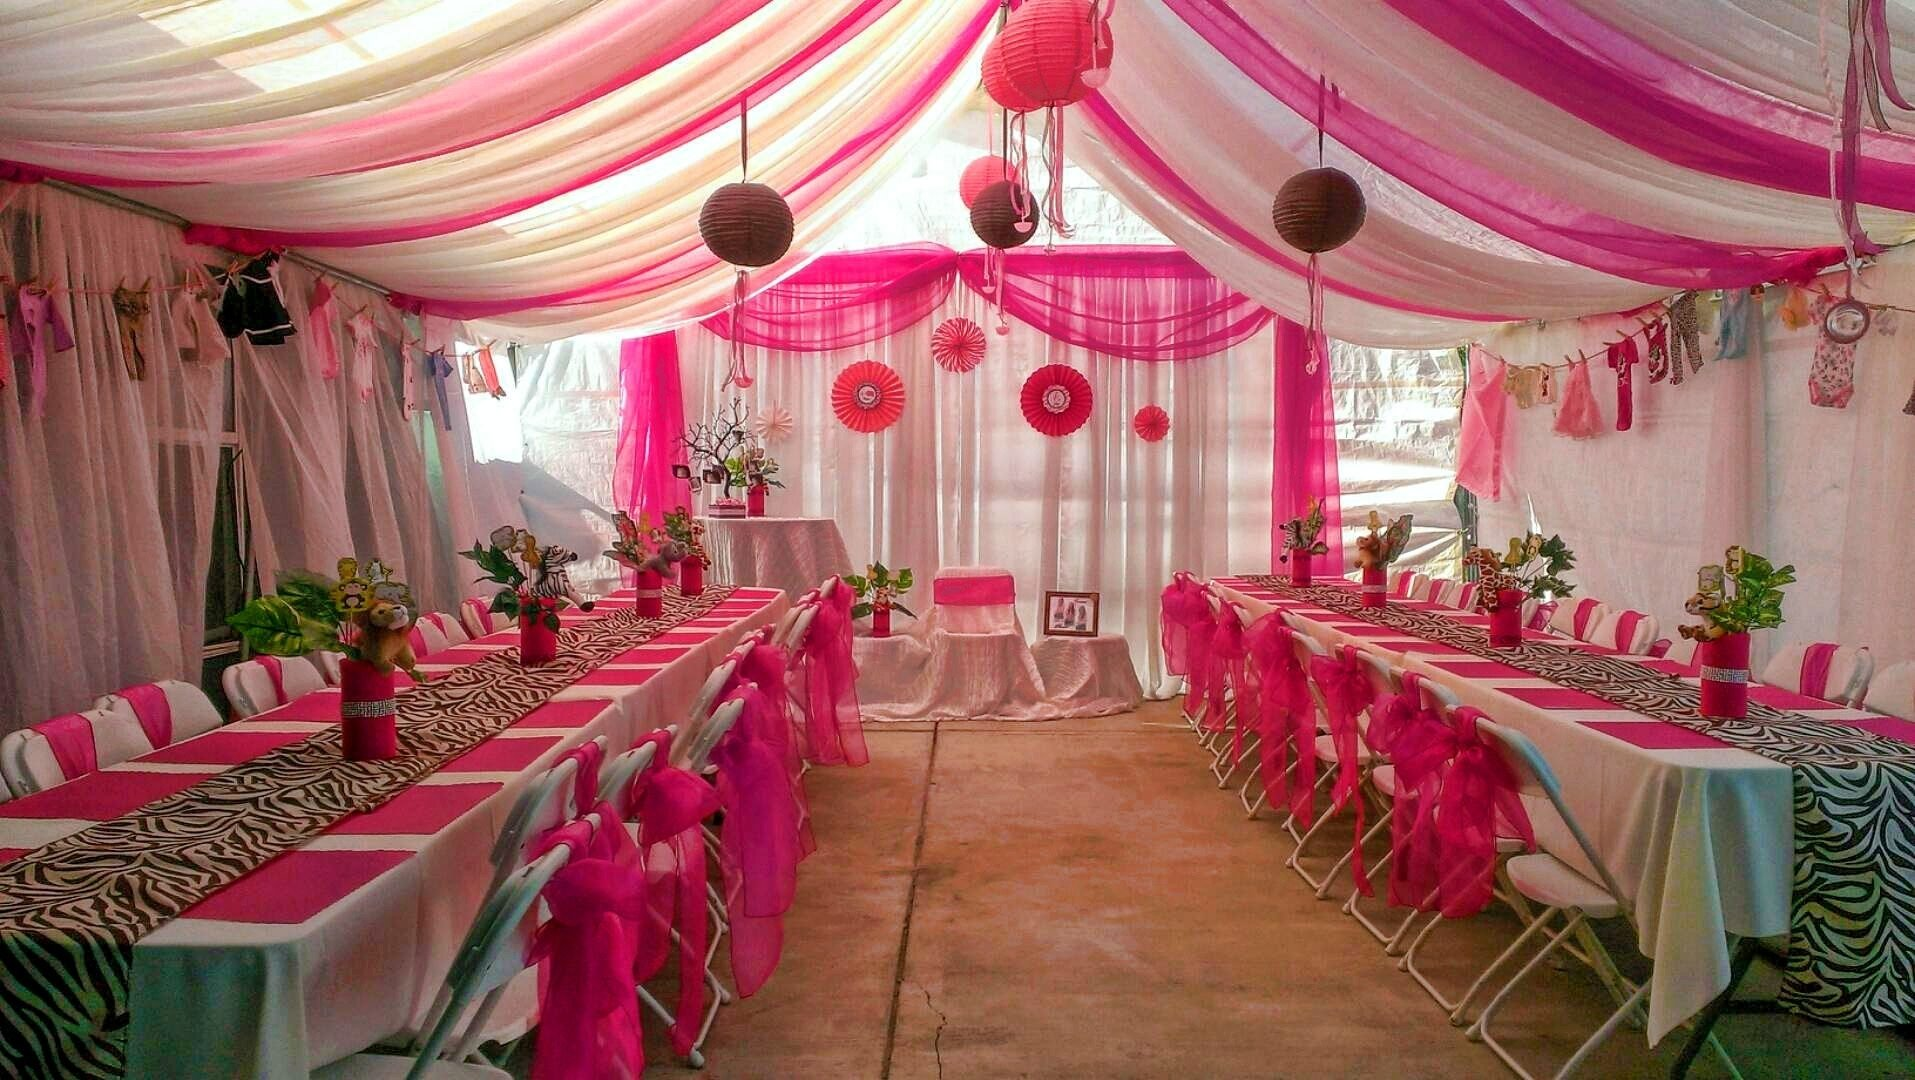 10 Fantastic Baby Girl Shower Decoration Ideas ideas for baby shower girl exquisite pinterest cute themes boy 2021